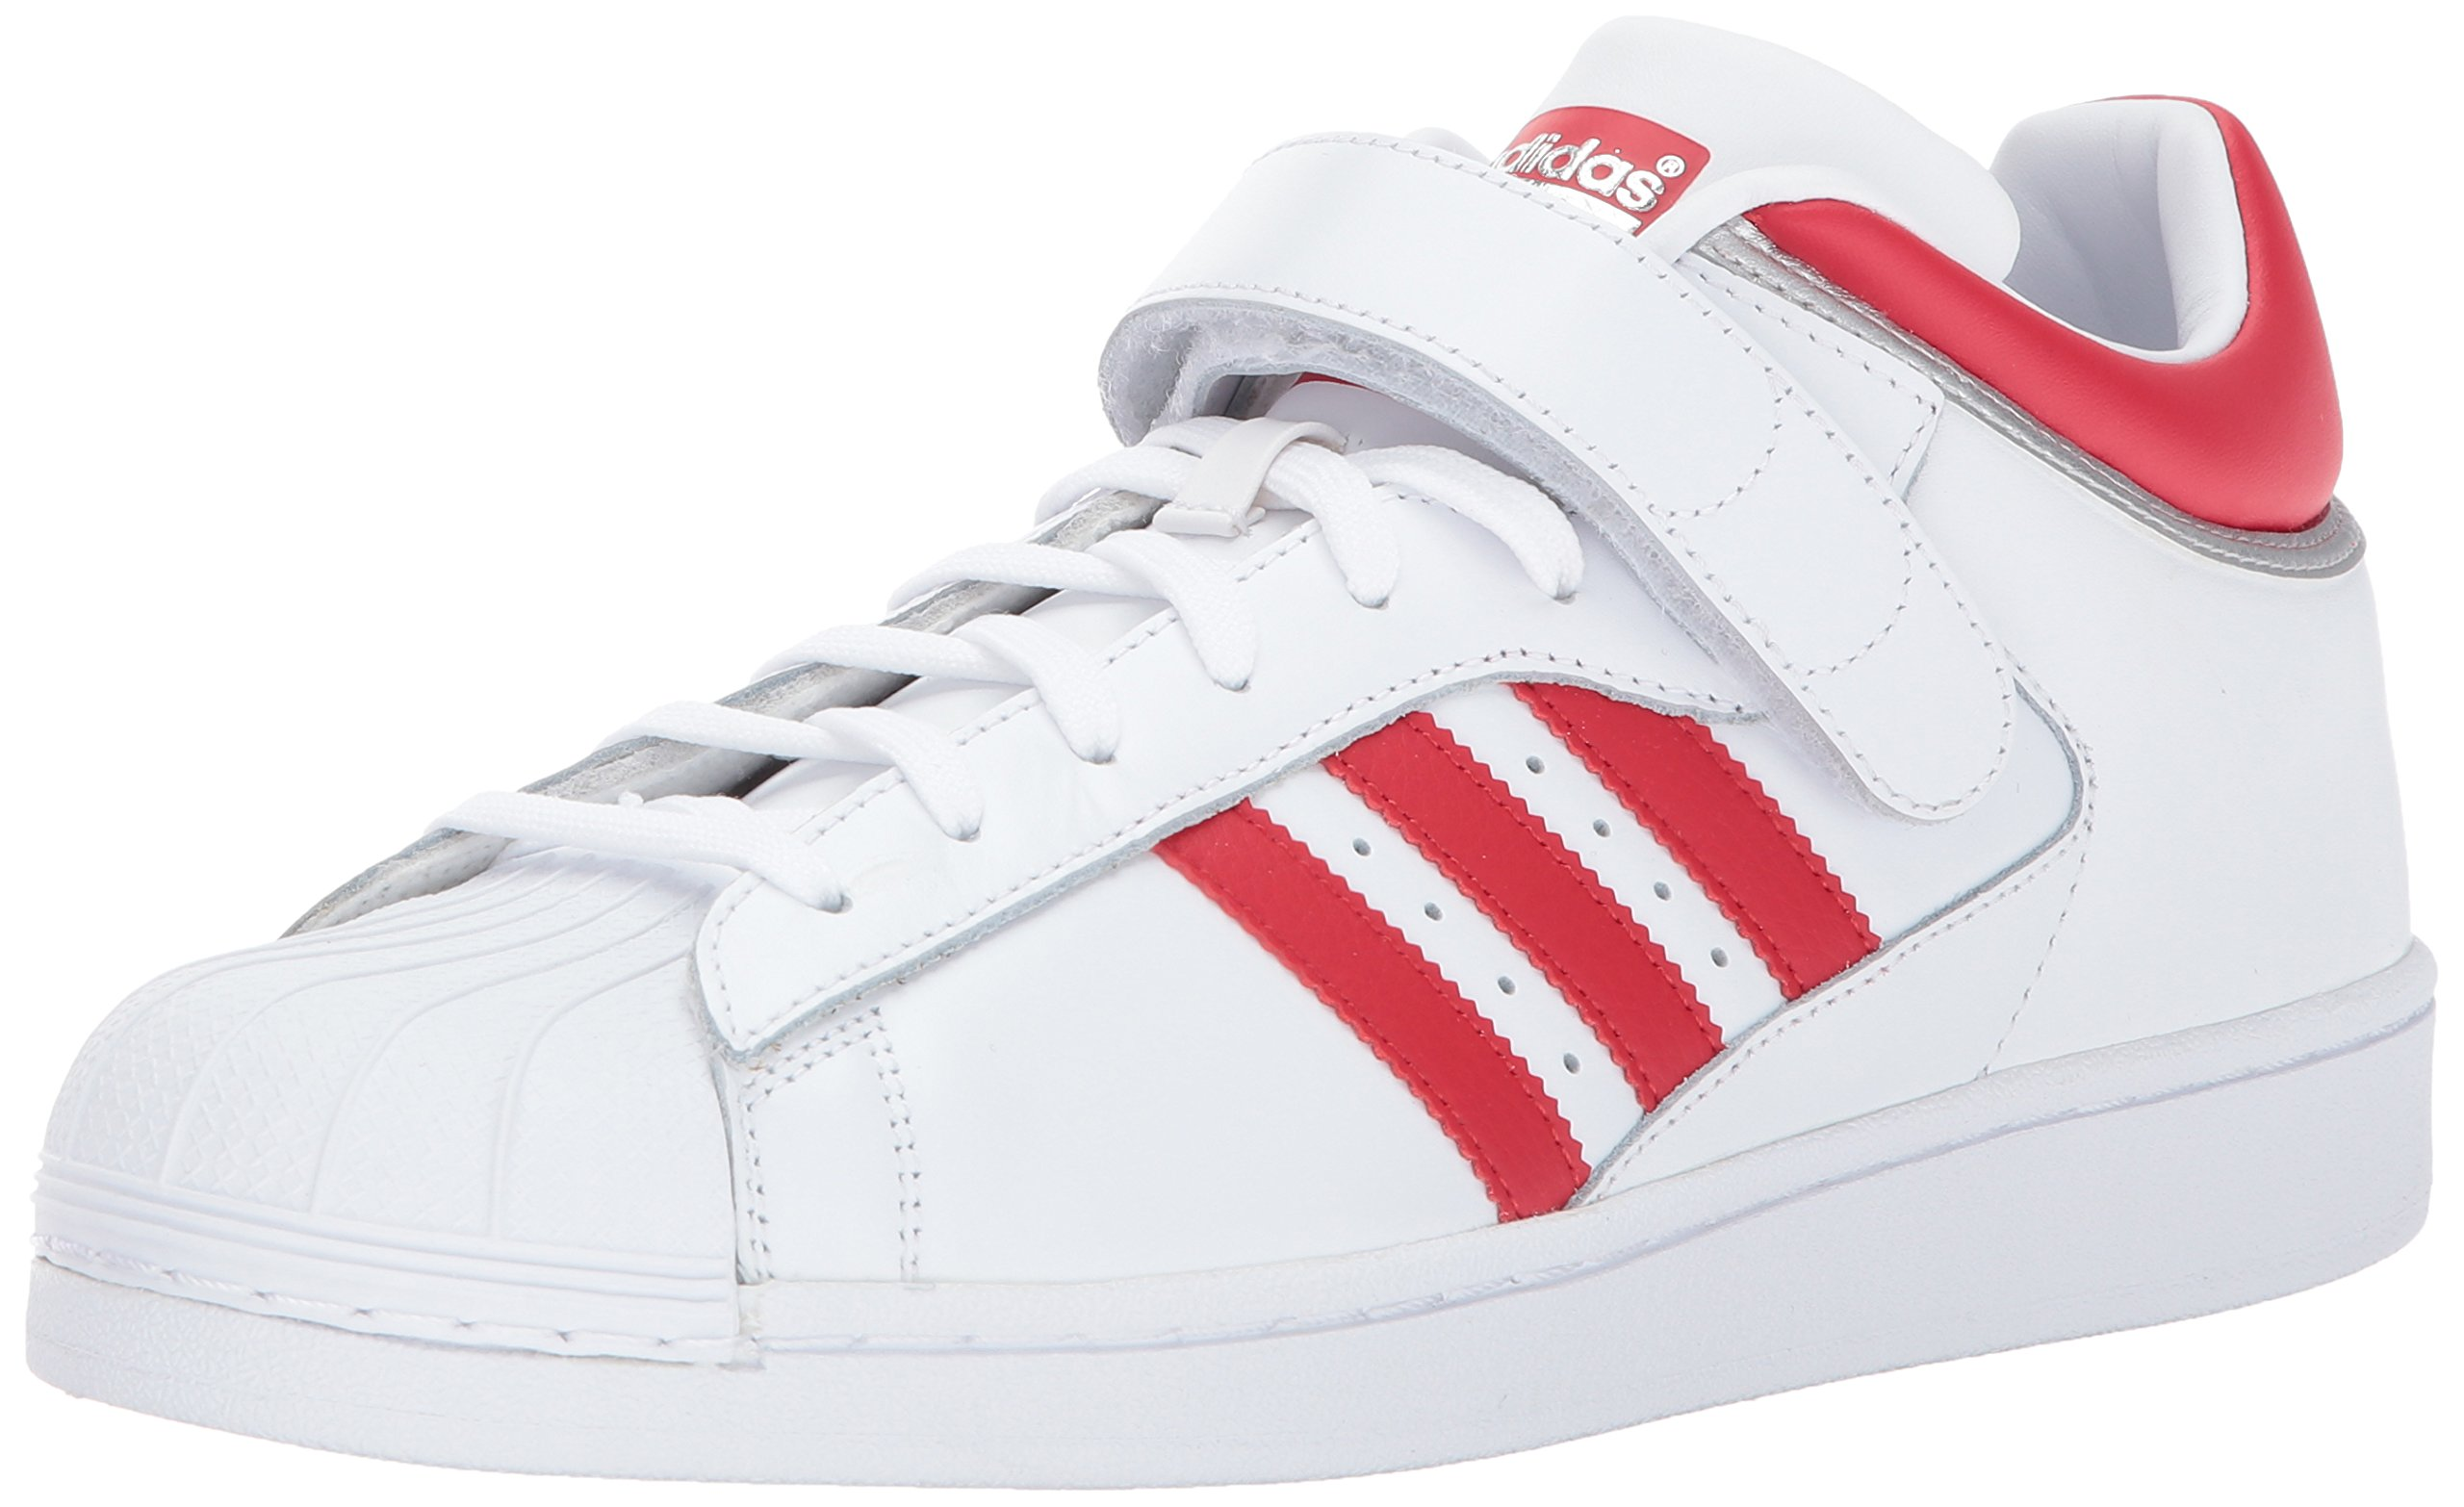 new styles 69938 6fe64 Galleon - Adidas Originals Men s Pro Shell Running Shoe, White Scarlet Metallic  Silver, (11 M US)